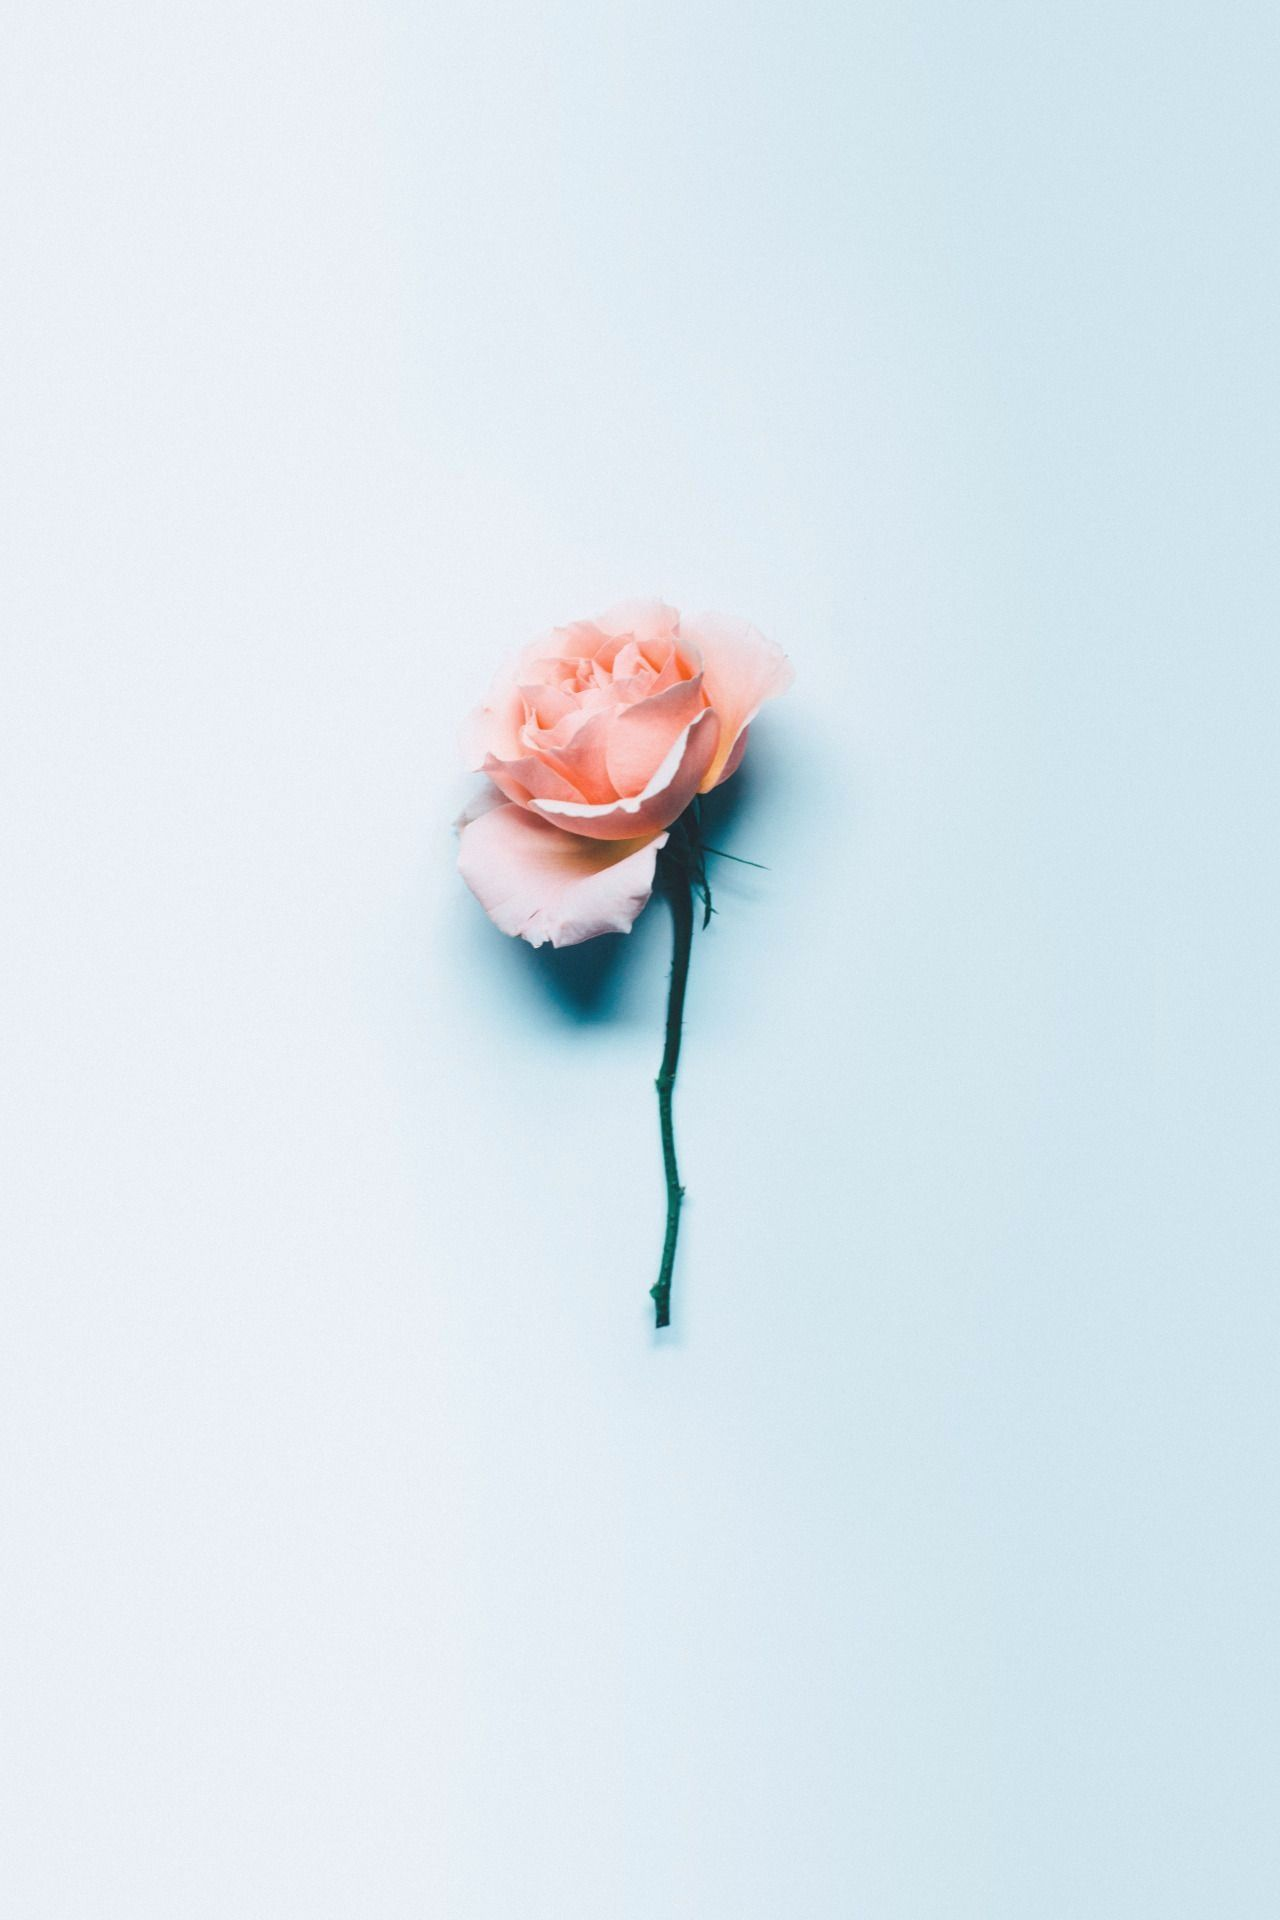 Aesthetic Rose Wallpapers Top Free Aesthetic Rose Aesthetic Roses Rose Wallpaper Blue Artwork